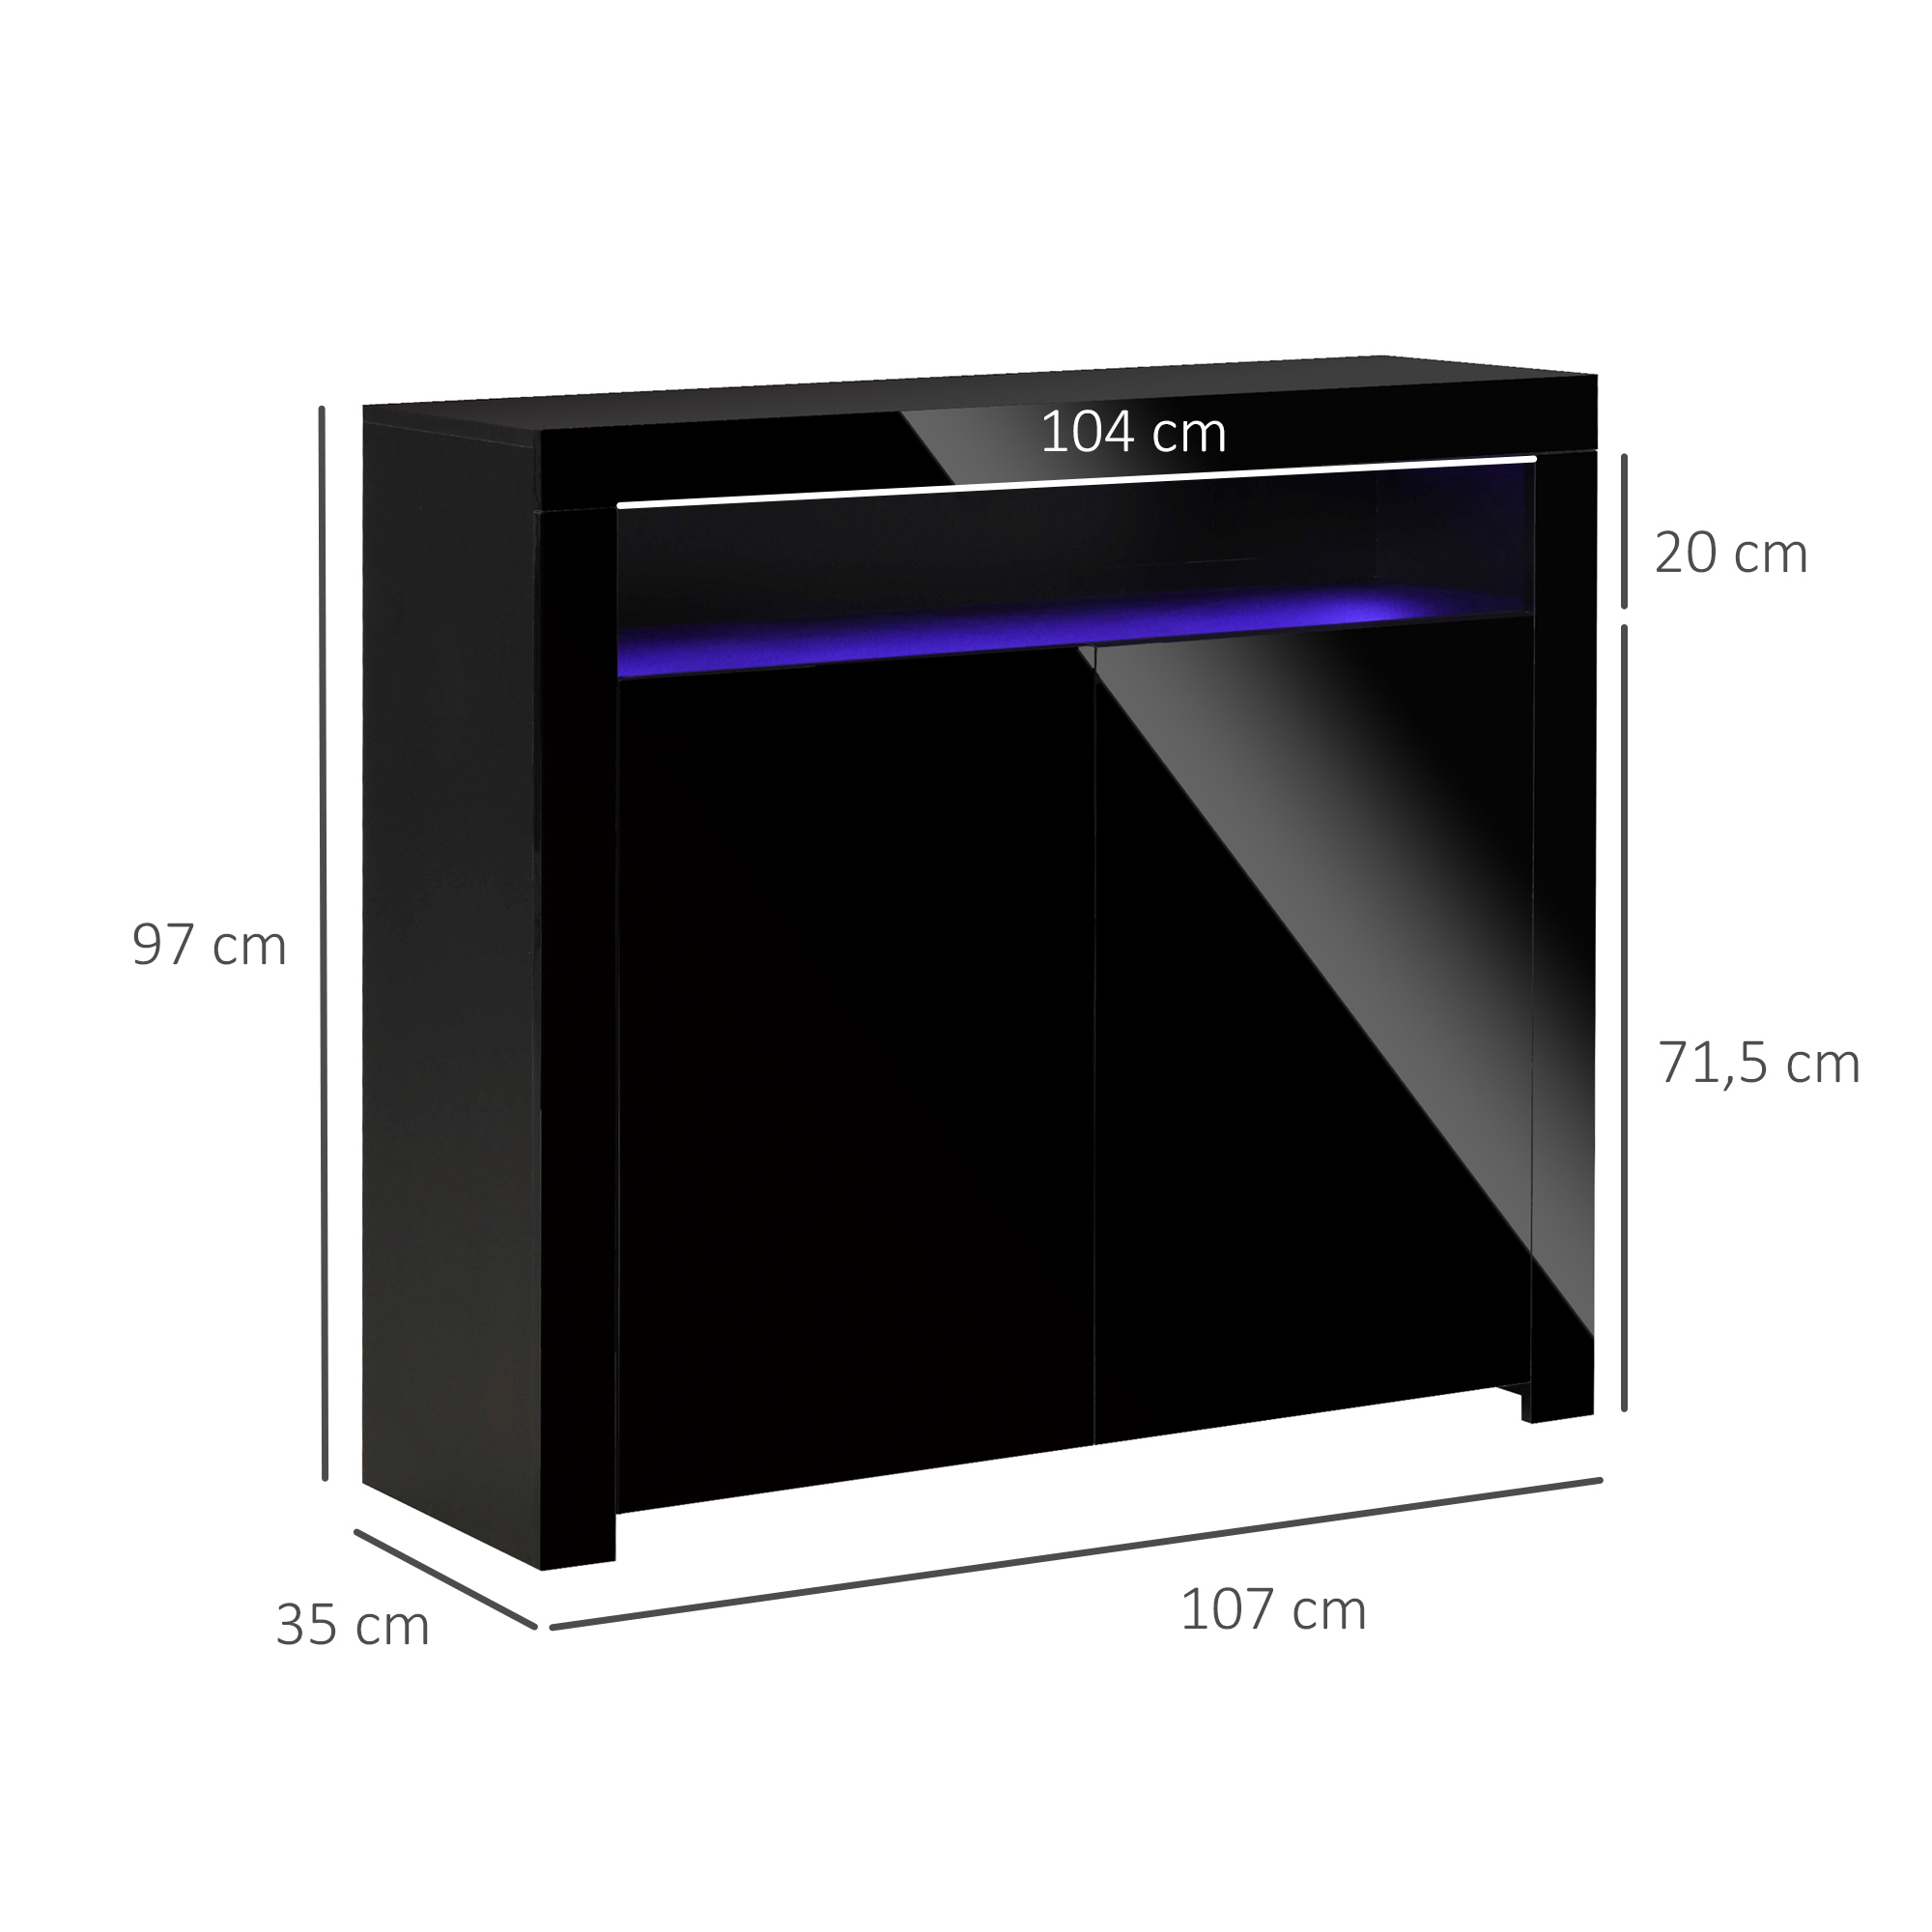 thumbnail 3 - High Gloss LED Cabinet Cupboard Sideboard Console with RGB Lighting